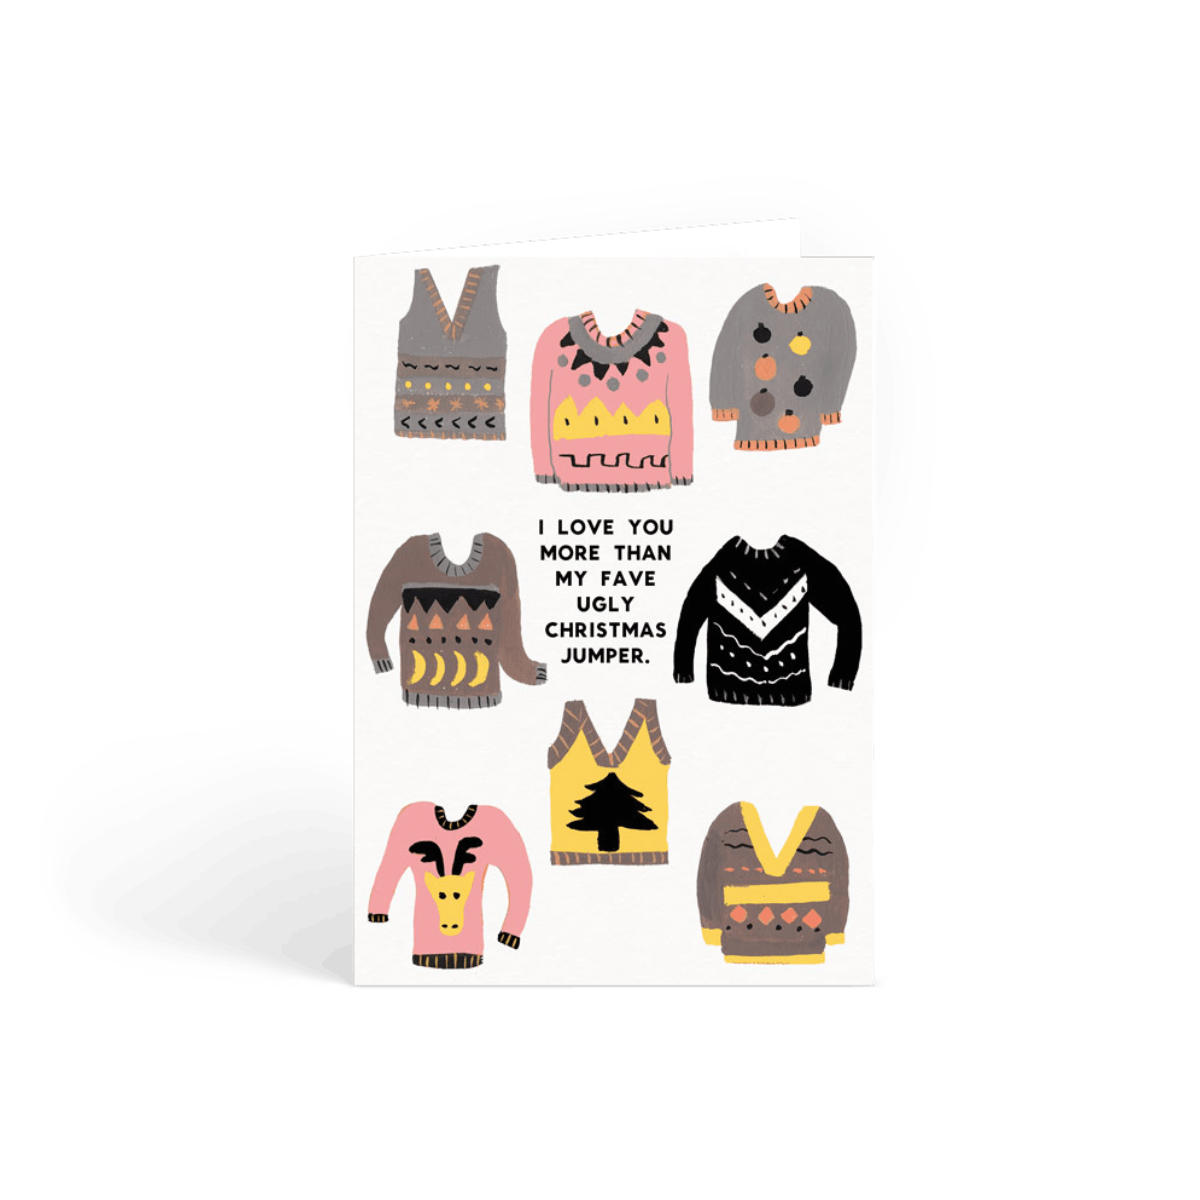 Https%3a%2f%2fwww.papier.com%2fproduct image%2f11647%2f2%2fugly jumpers 2954 front 1541172579.png?ixlib=rb 1.1